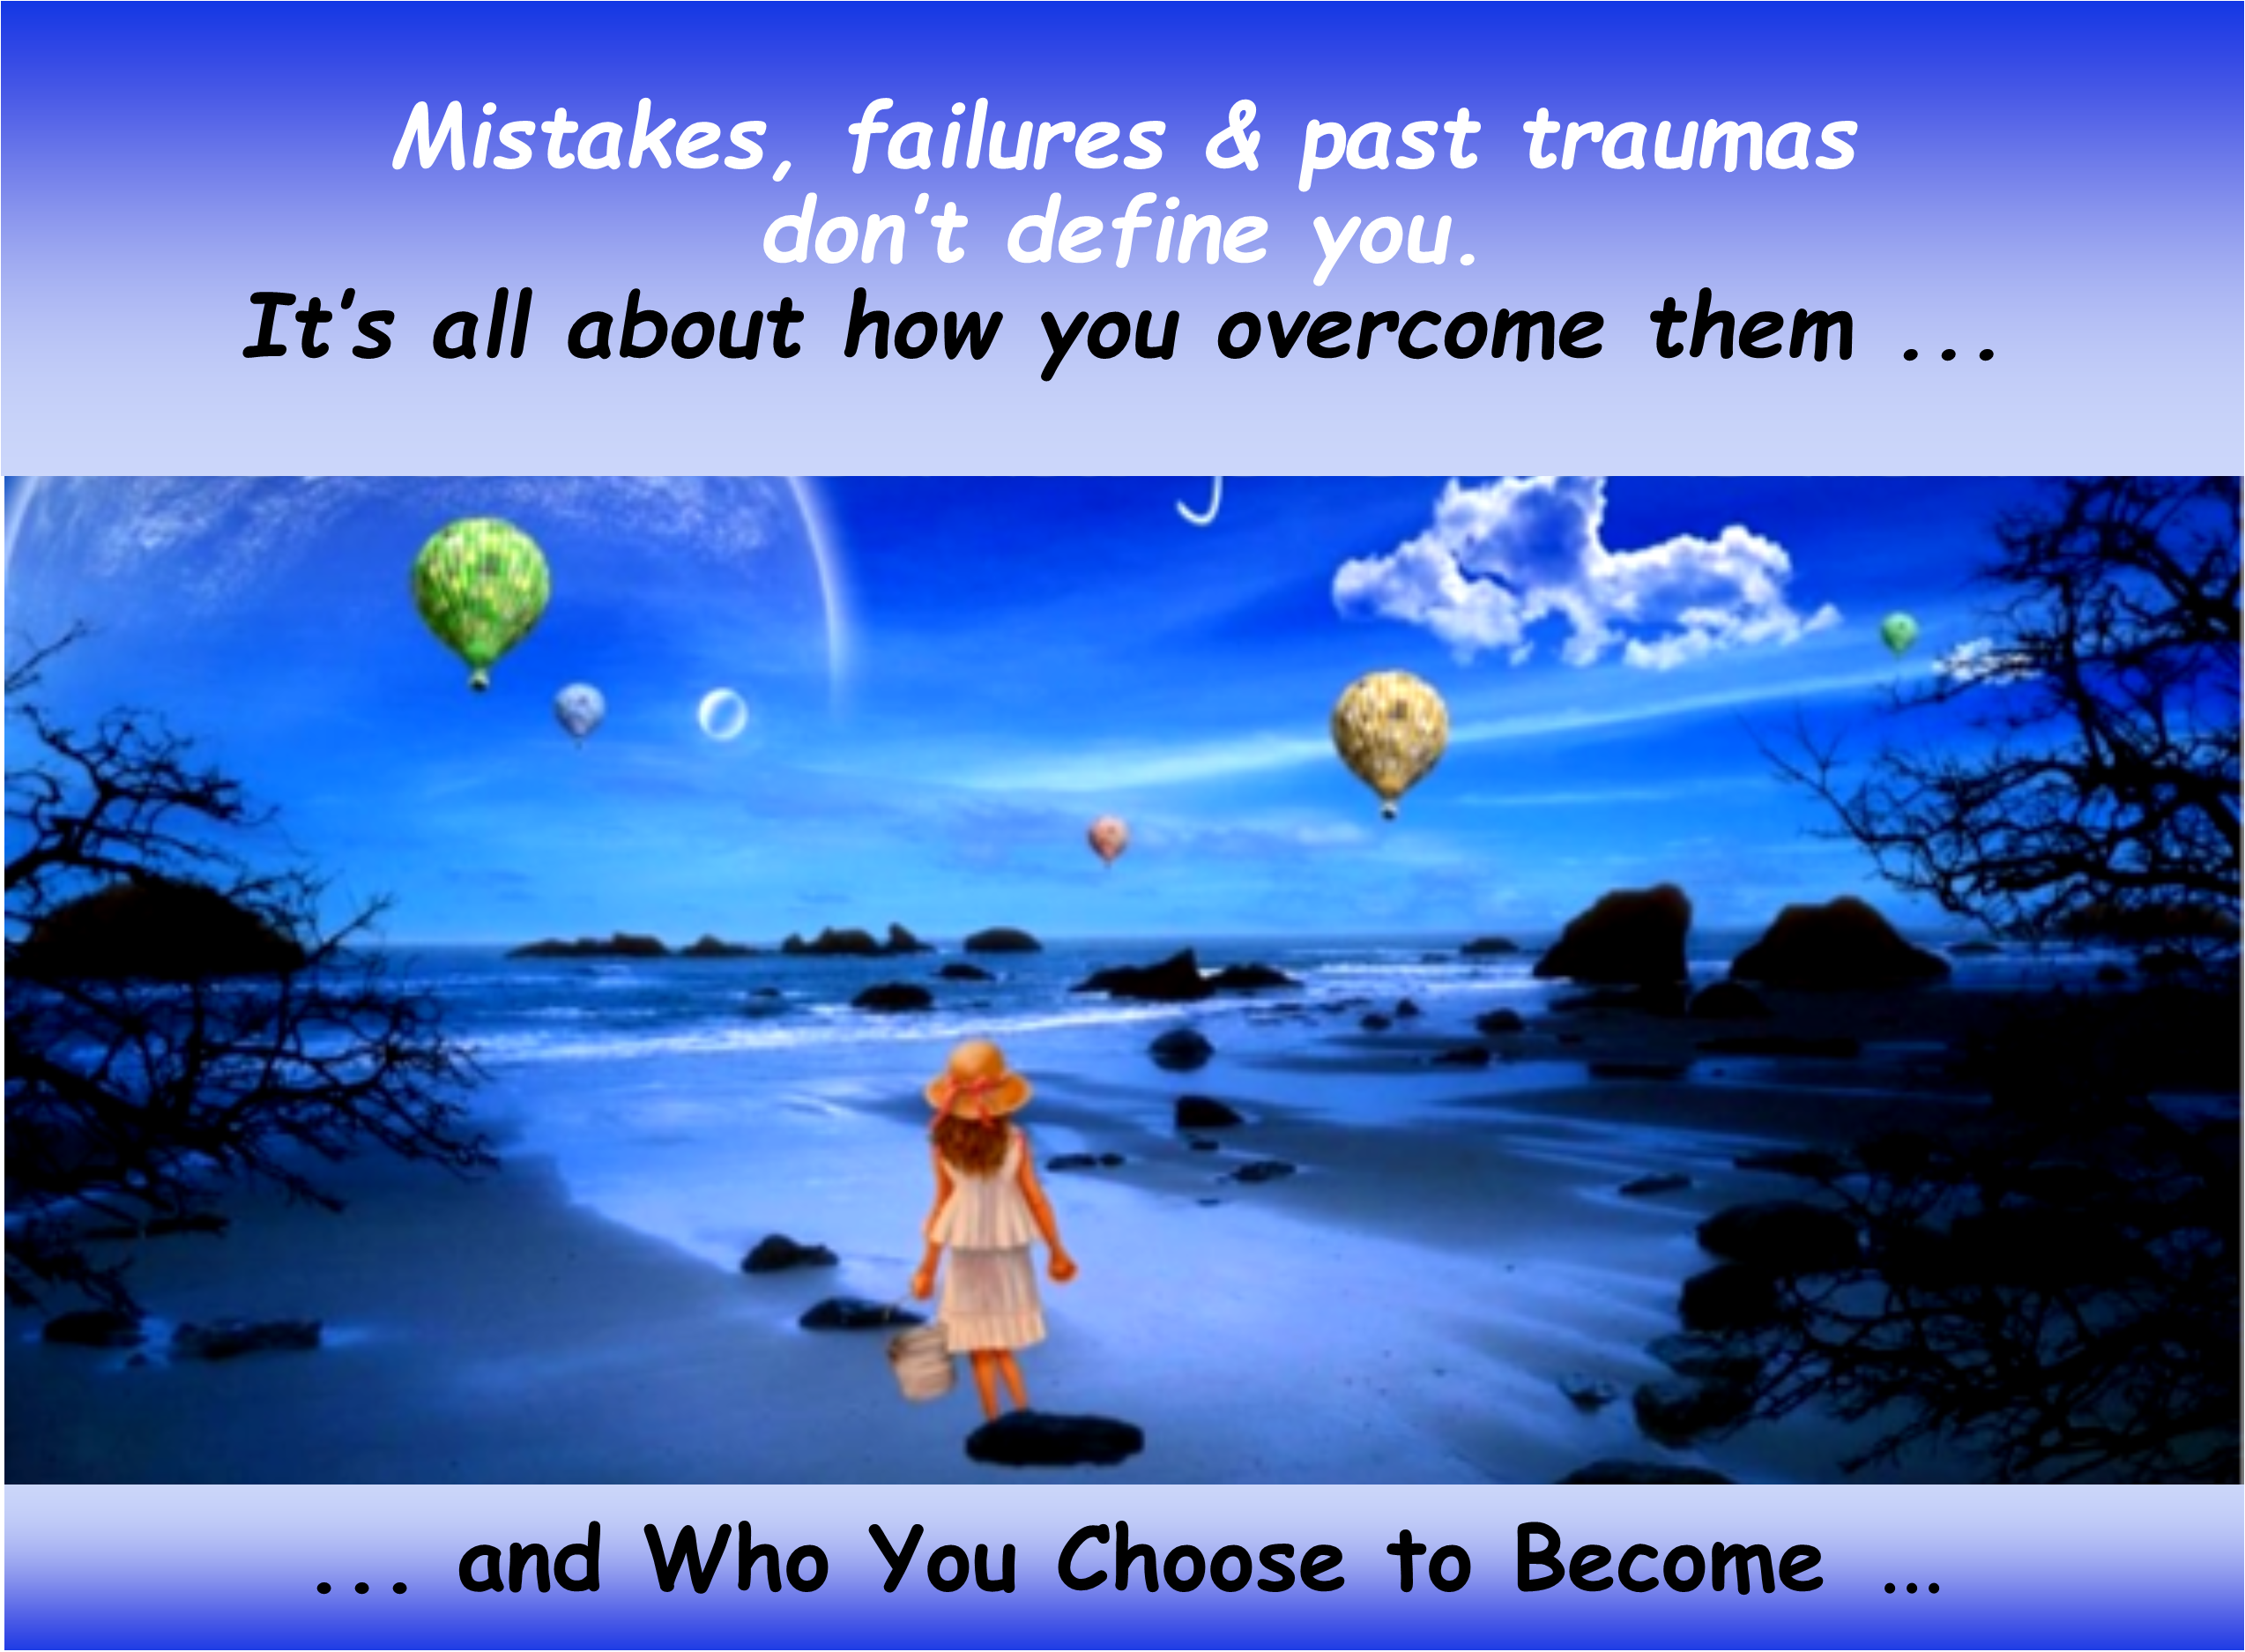 Mistakes don't define you.png